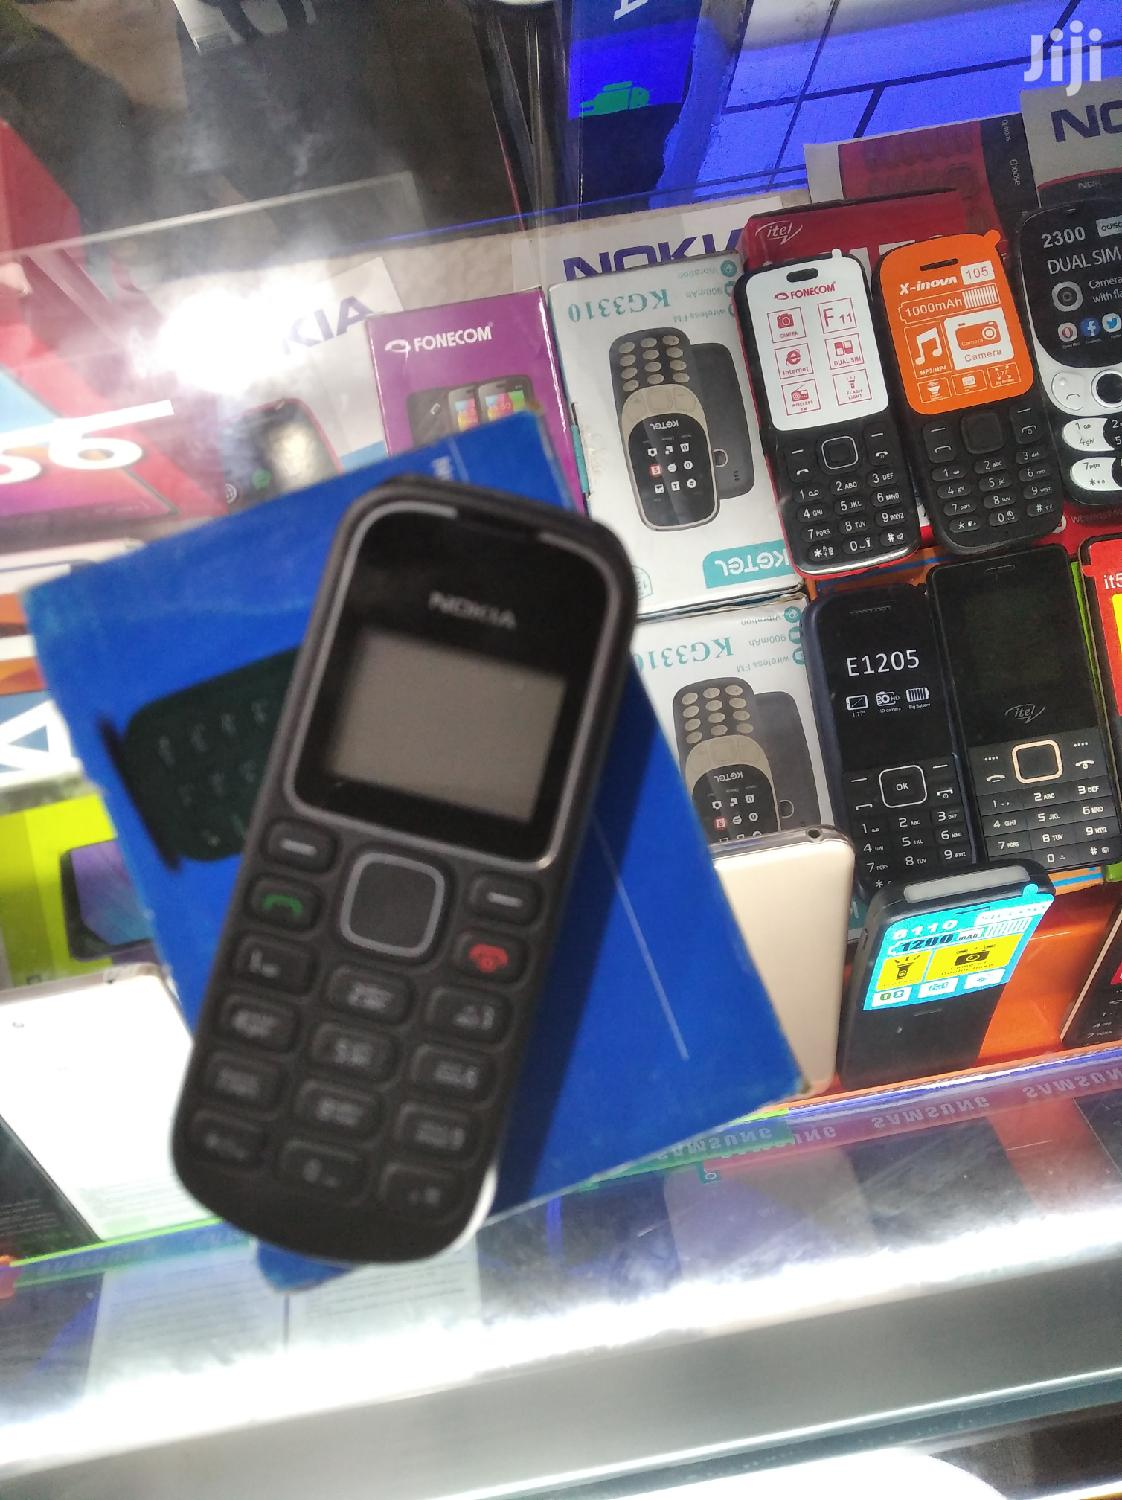 New Nokia 1280 Black